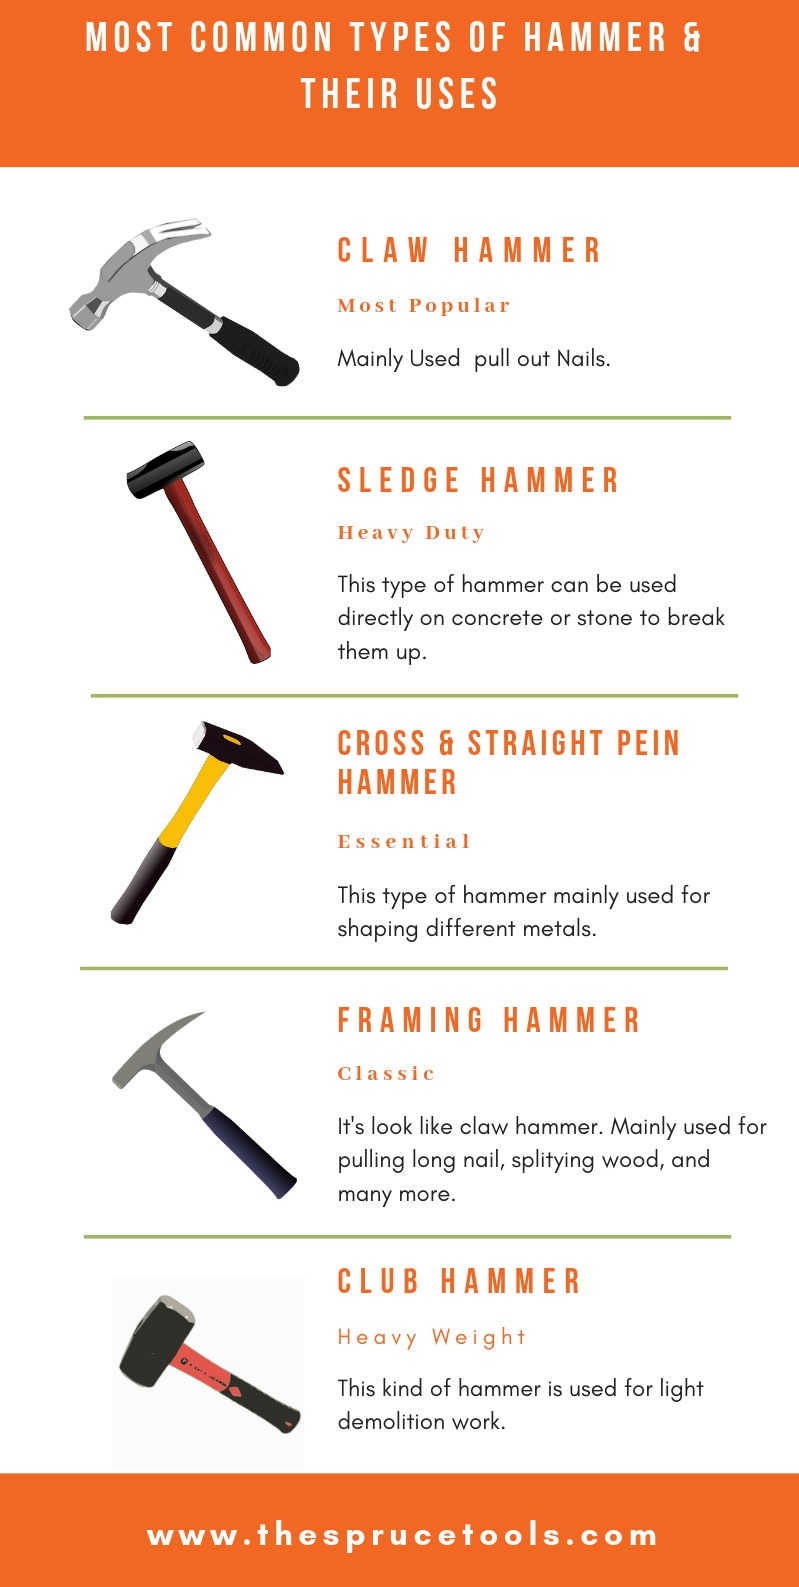 Different types of hammers and their uses